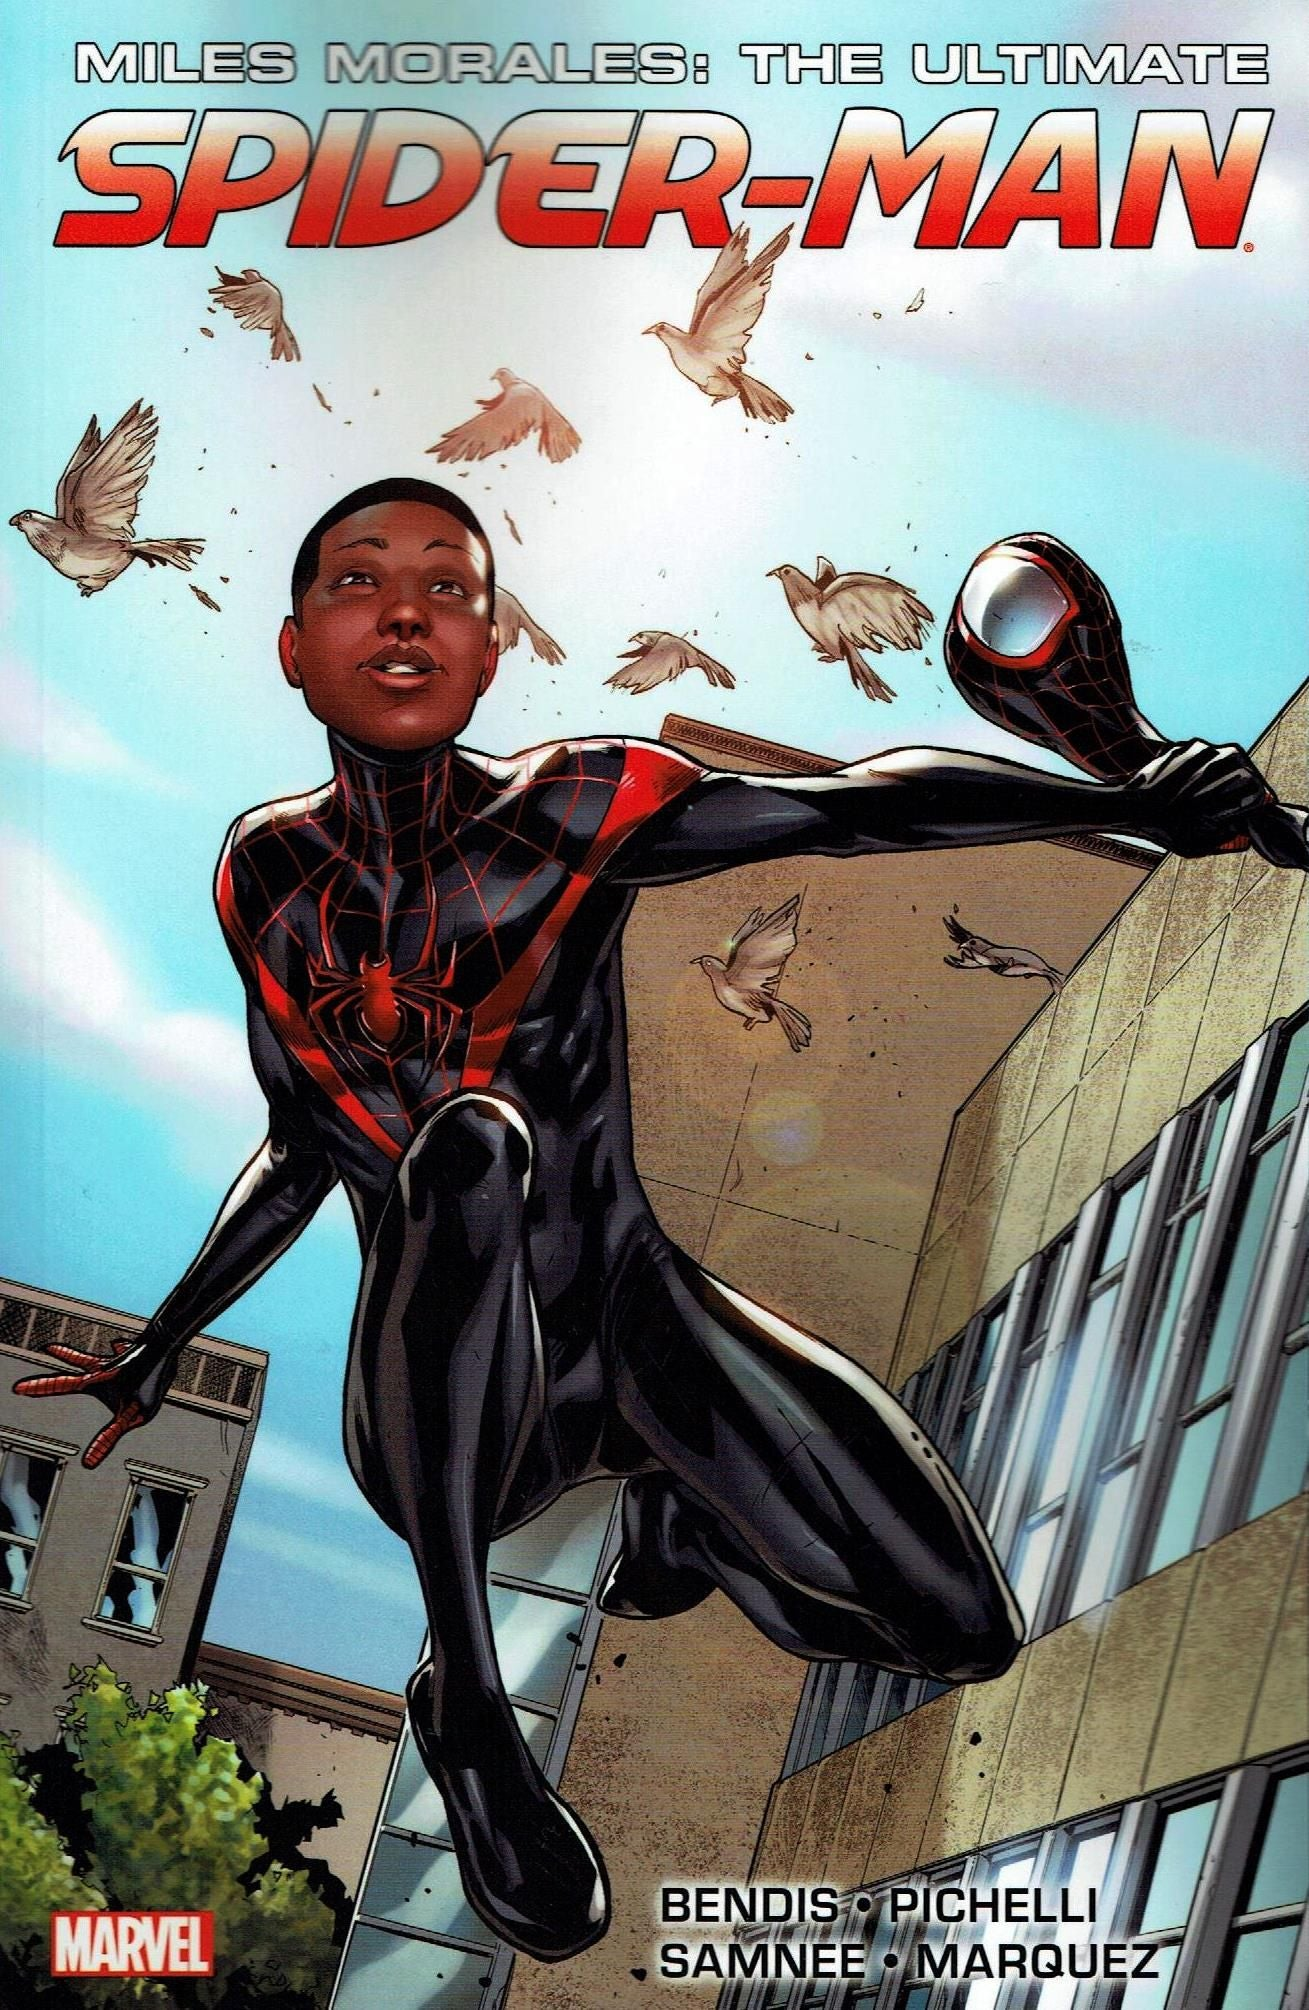 Miles Morales: The Ultimate Spider-Man Book 1